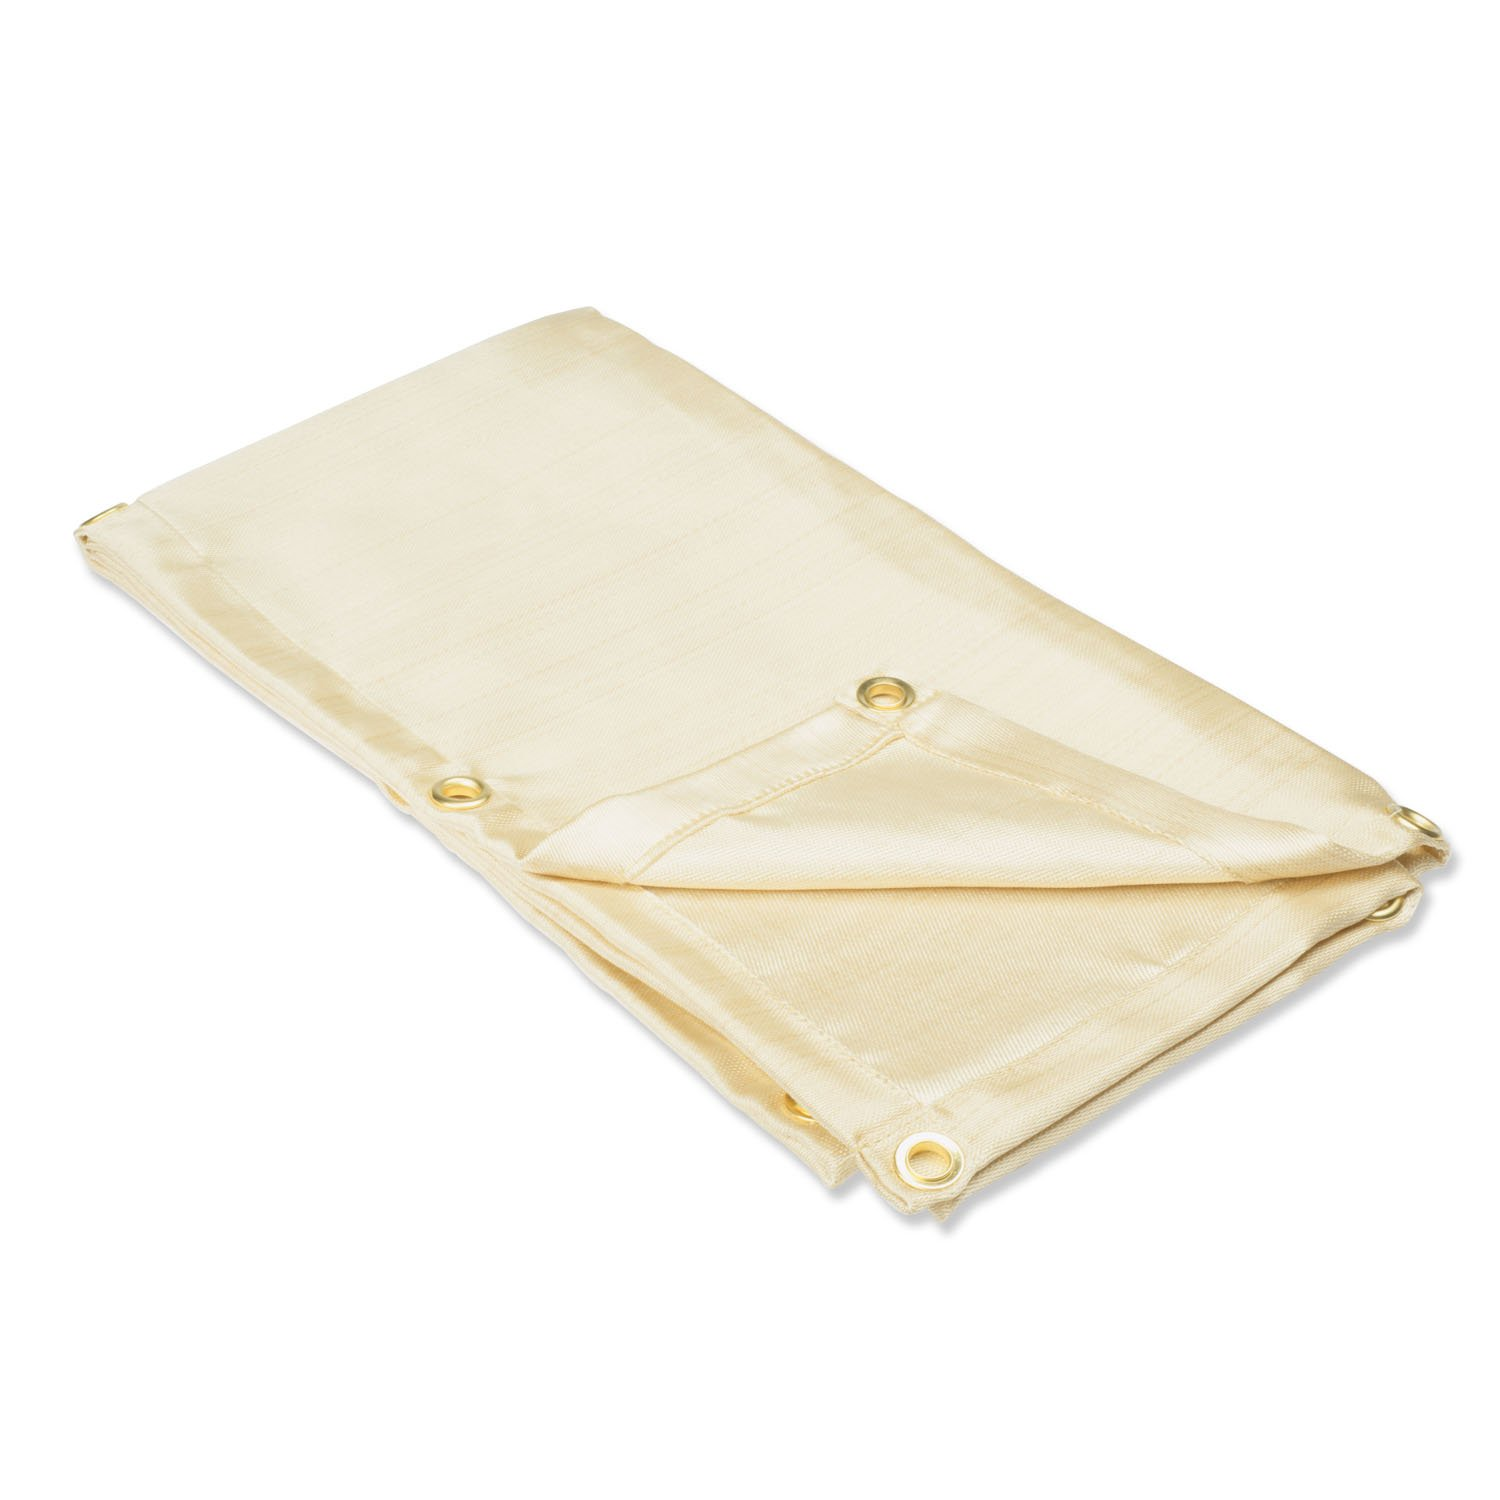 Neiko 10908A Heavy Duty Fiberglass Welding Blanket and Cover with Brass Grommets, 4' x 6', Clear